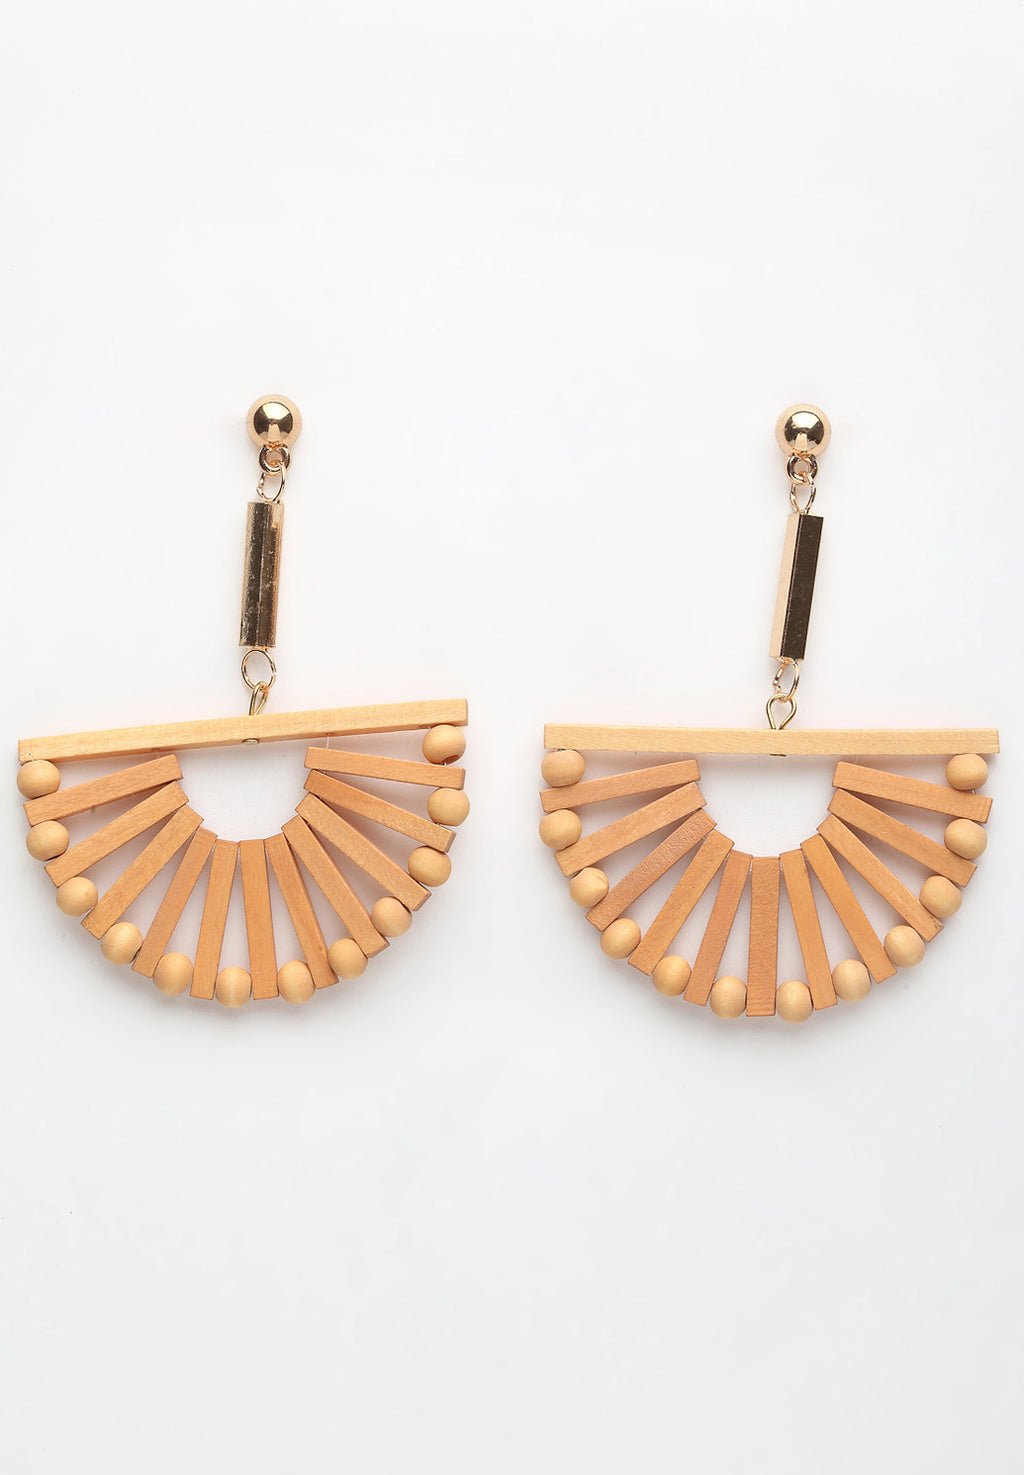 Avant-Garde Paris Beige Geometric Wooden Hanging Earrings